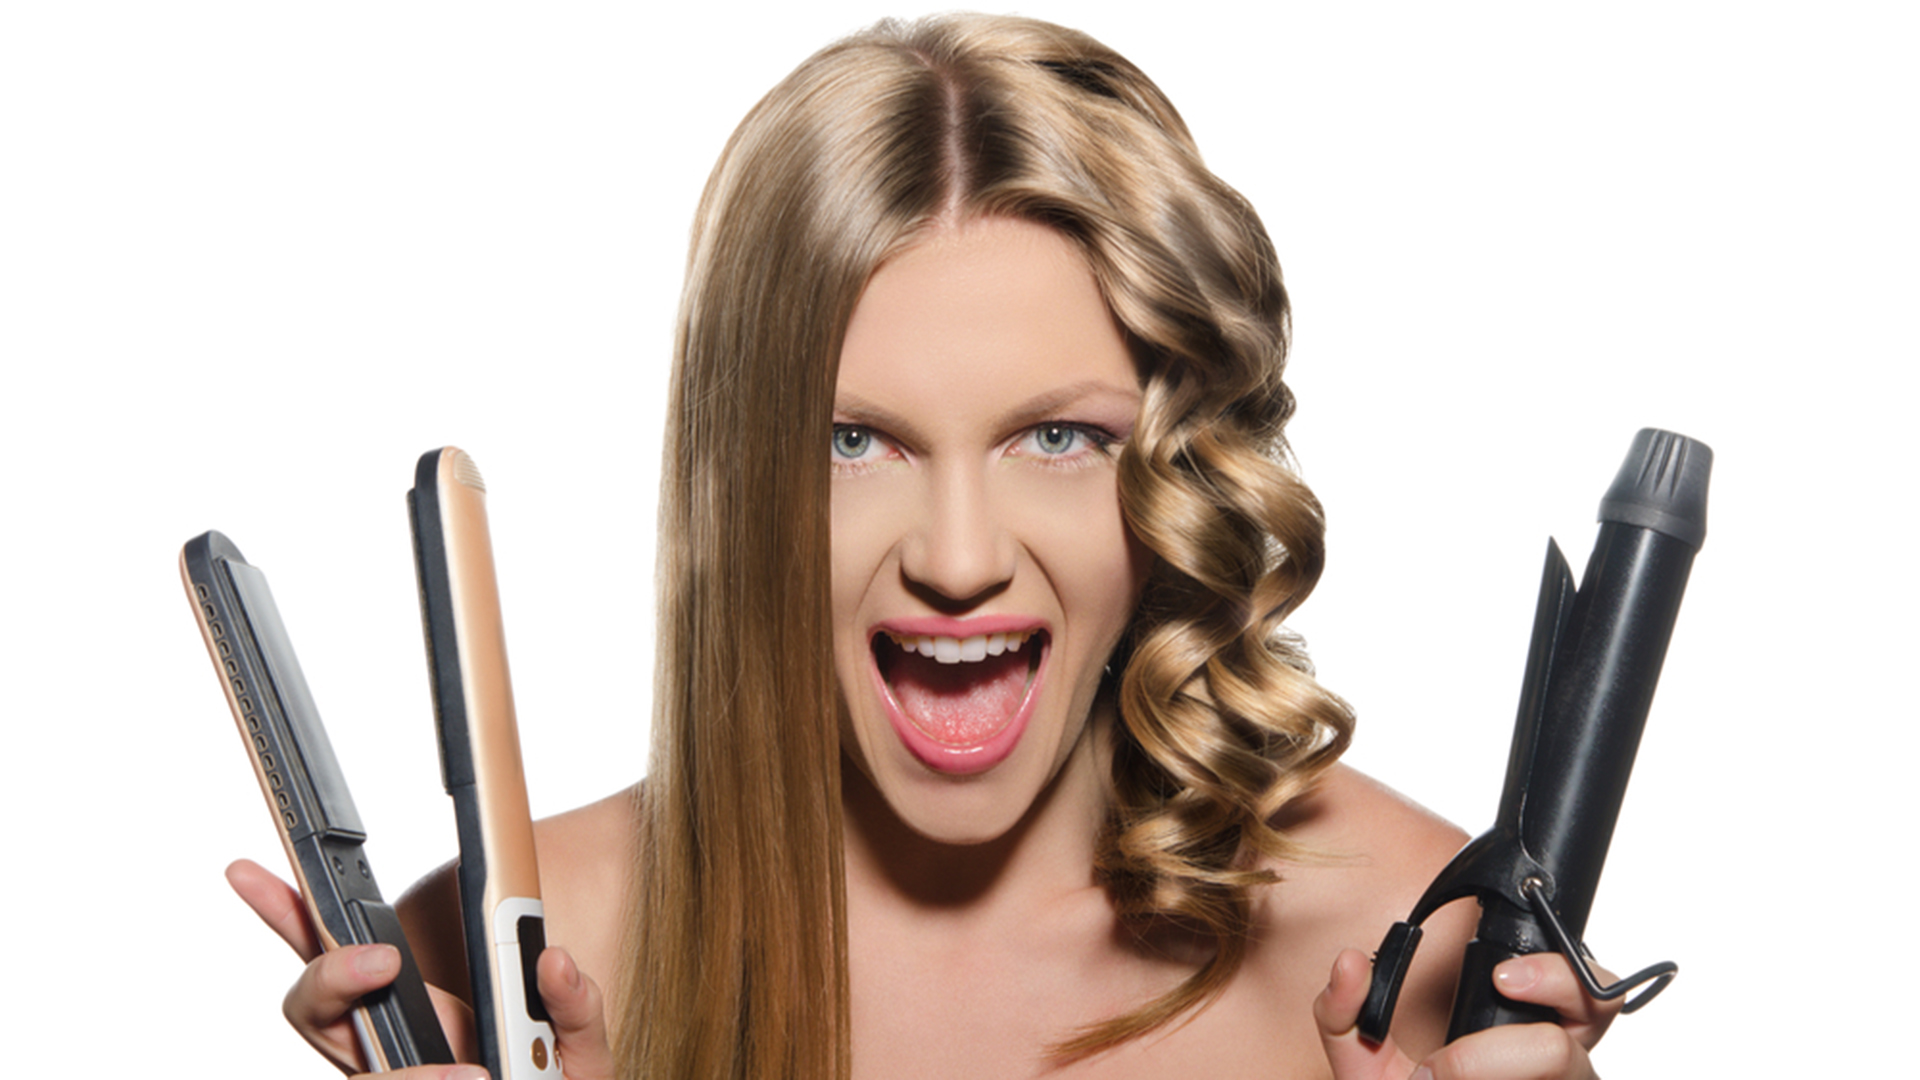 Style For Hair: Wedding Hairstyles Guide: Best Hair Hot Tools Under $50